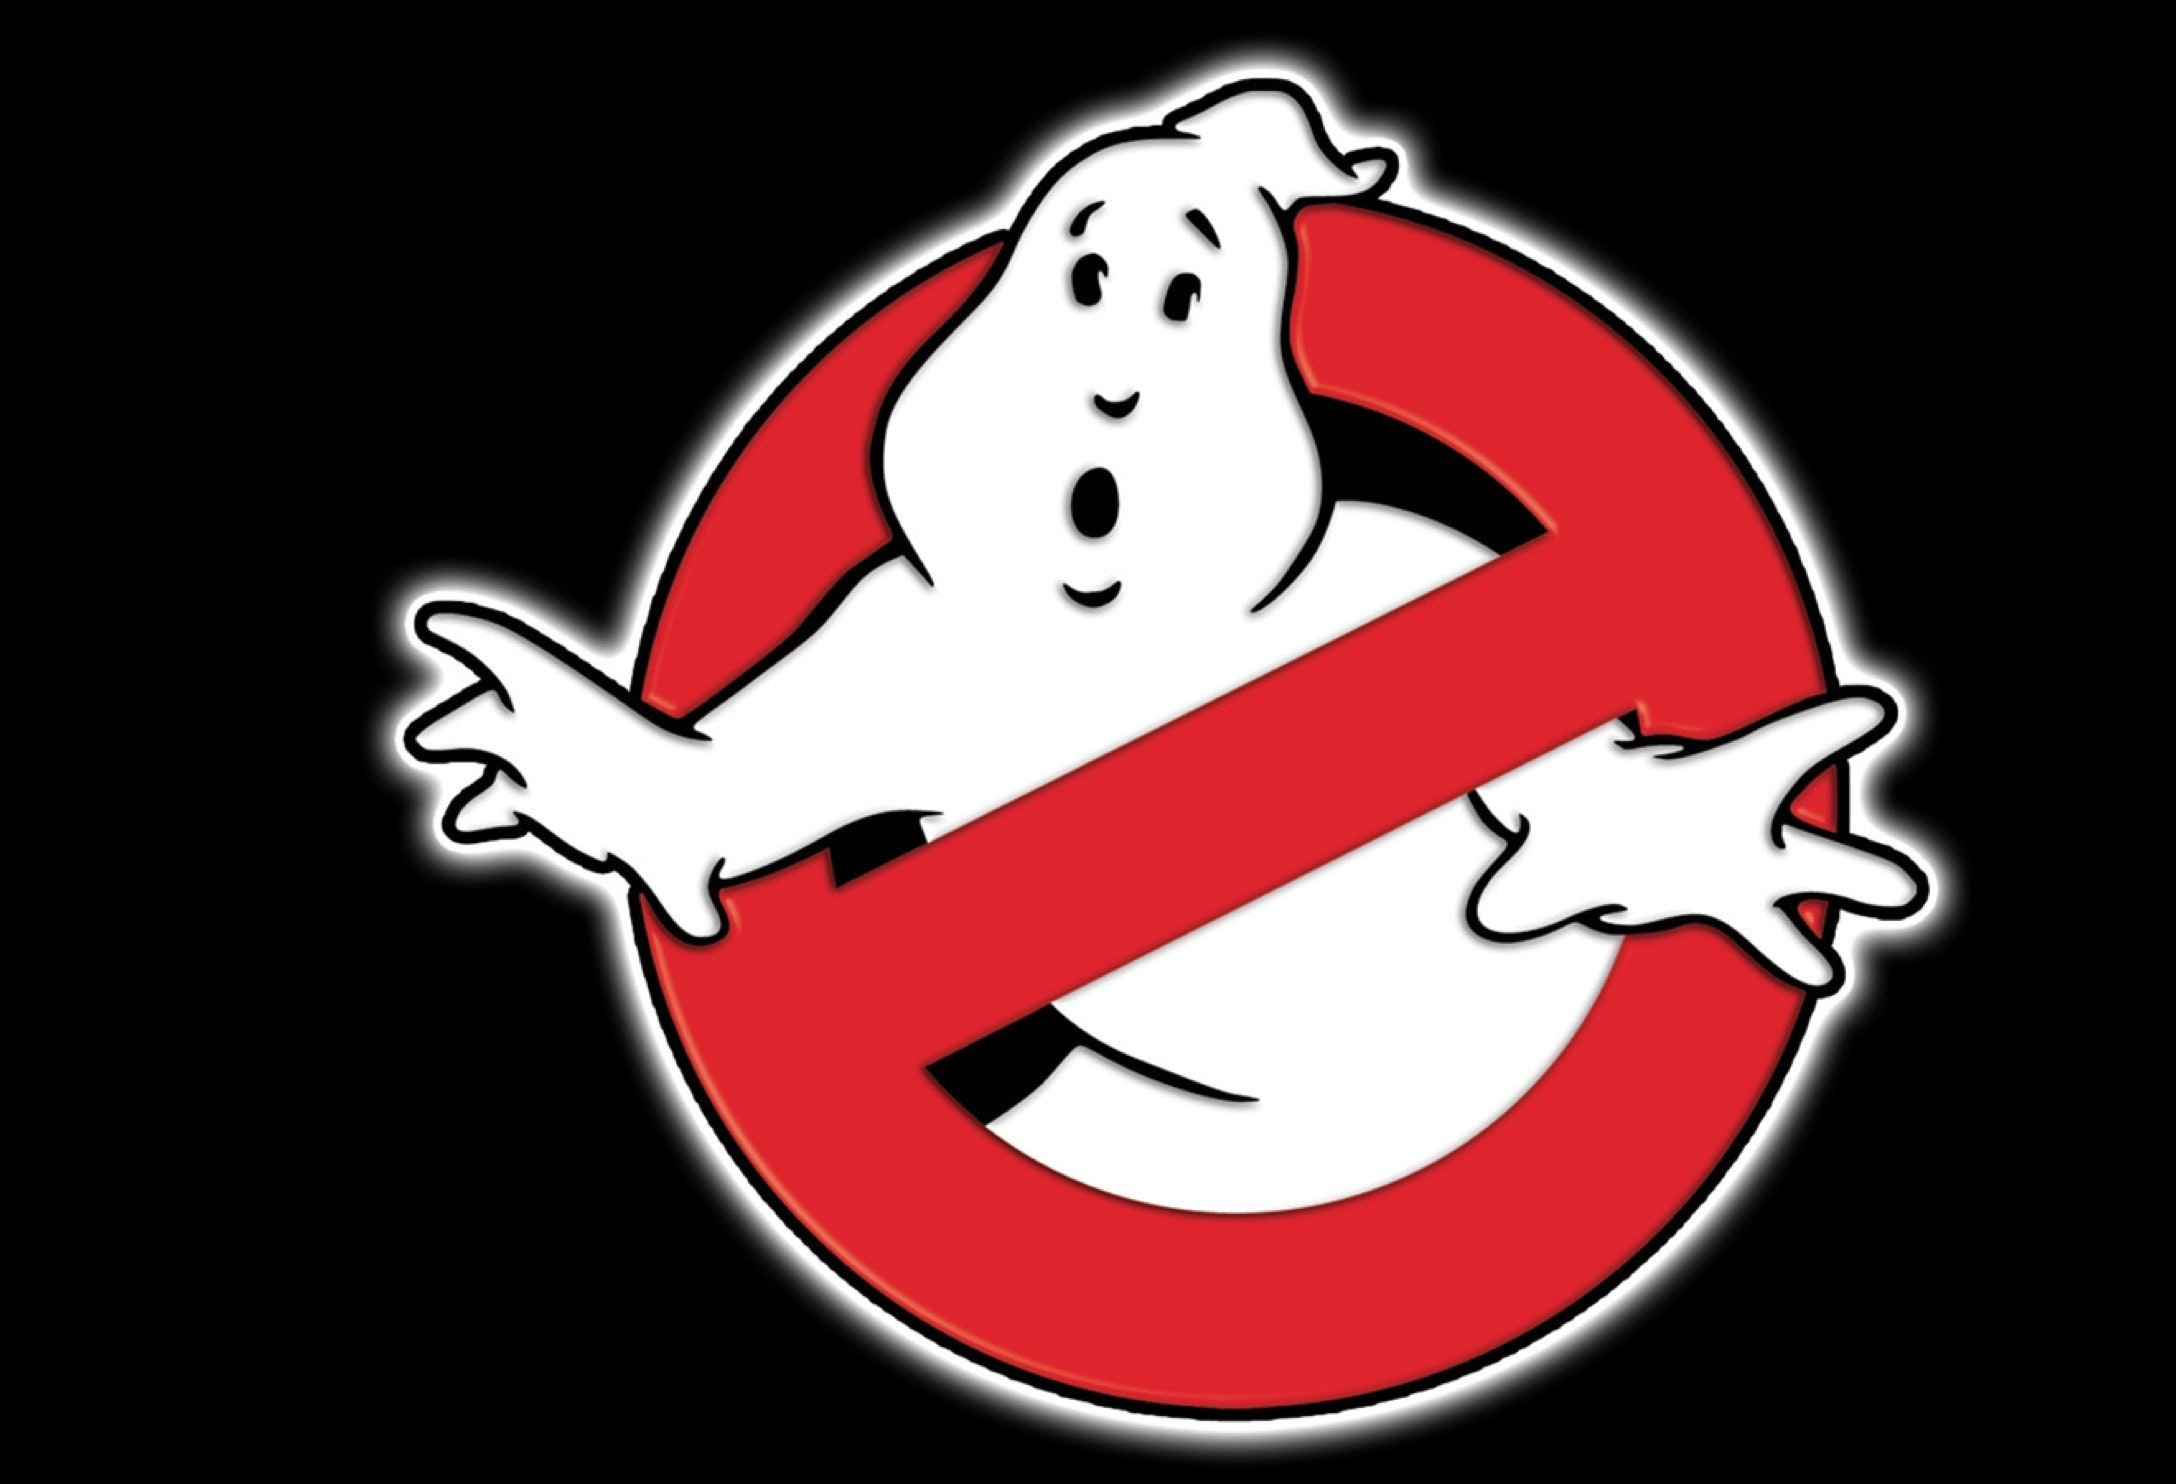 r i p michael c gross designer of the ghostbusters logo and rh inverse com Metal Band Logos Ideas 70s Rock Bands Logos